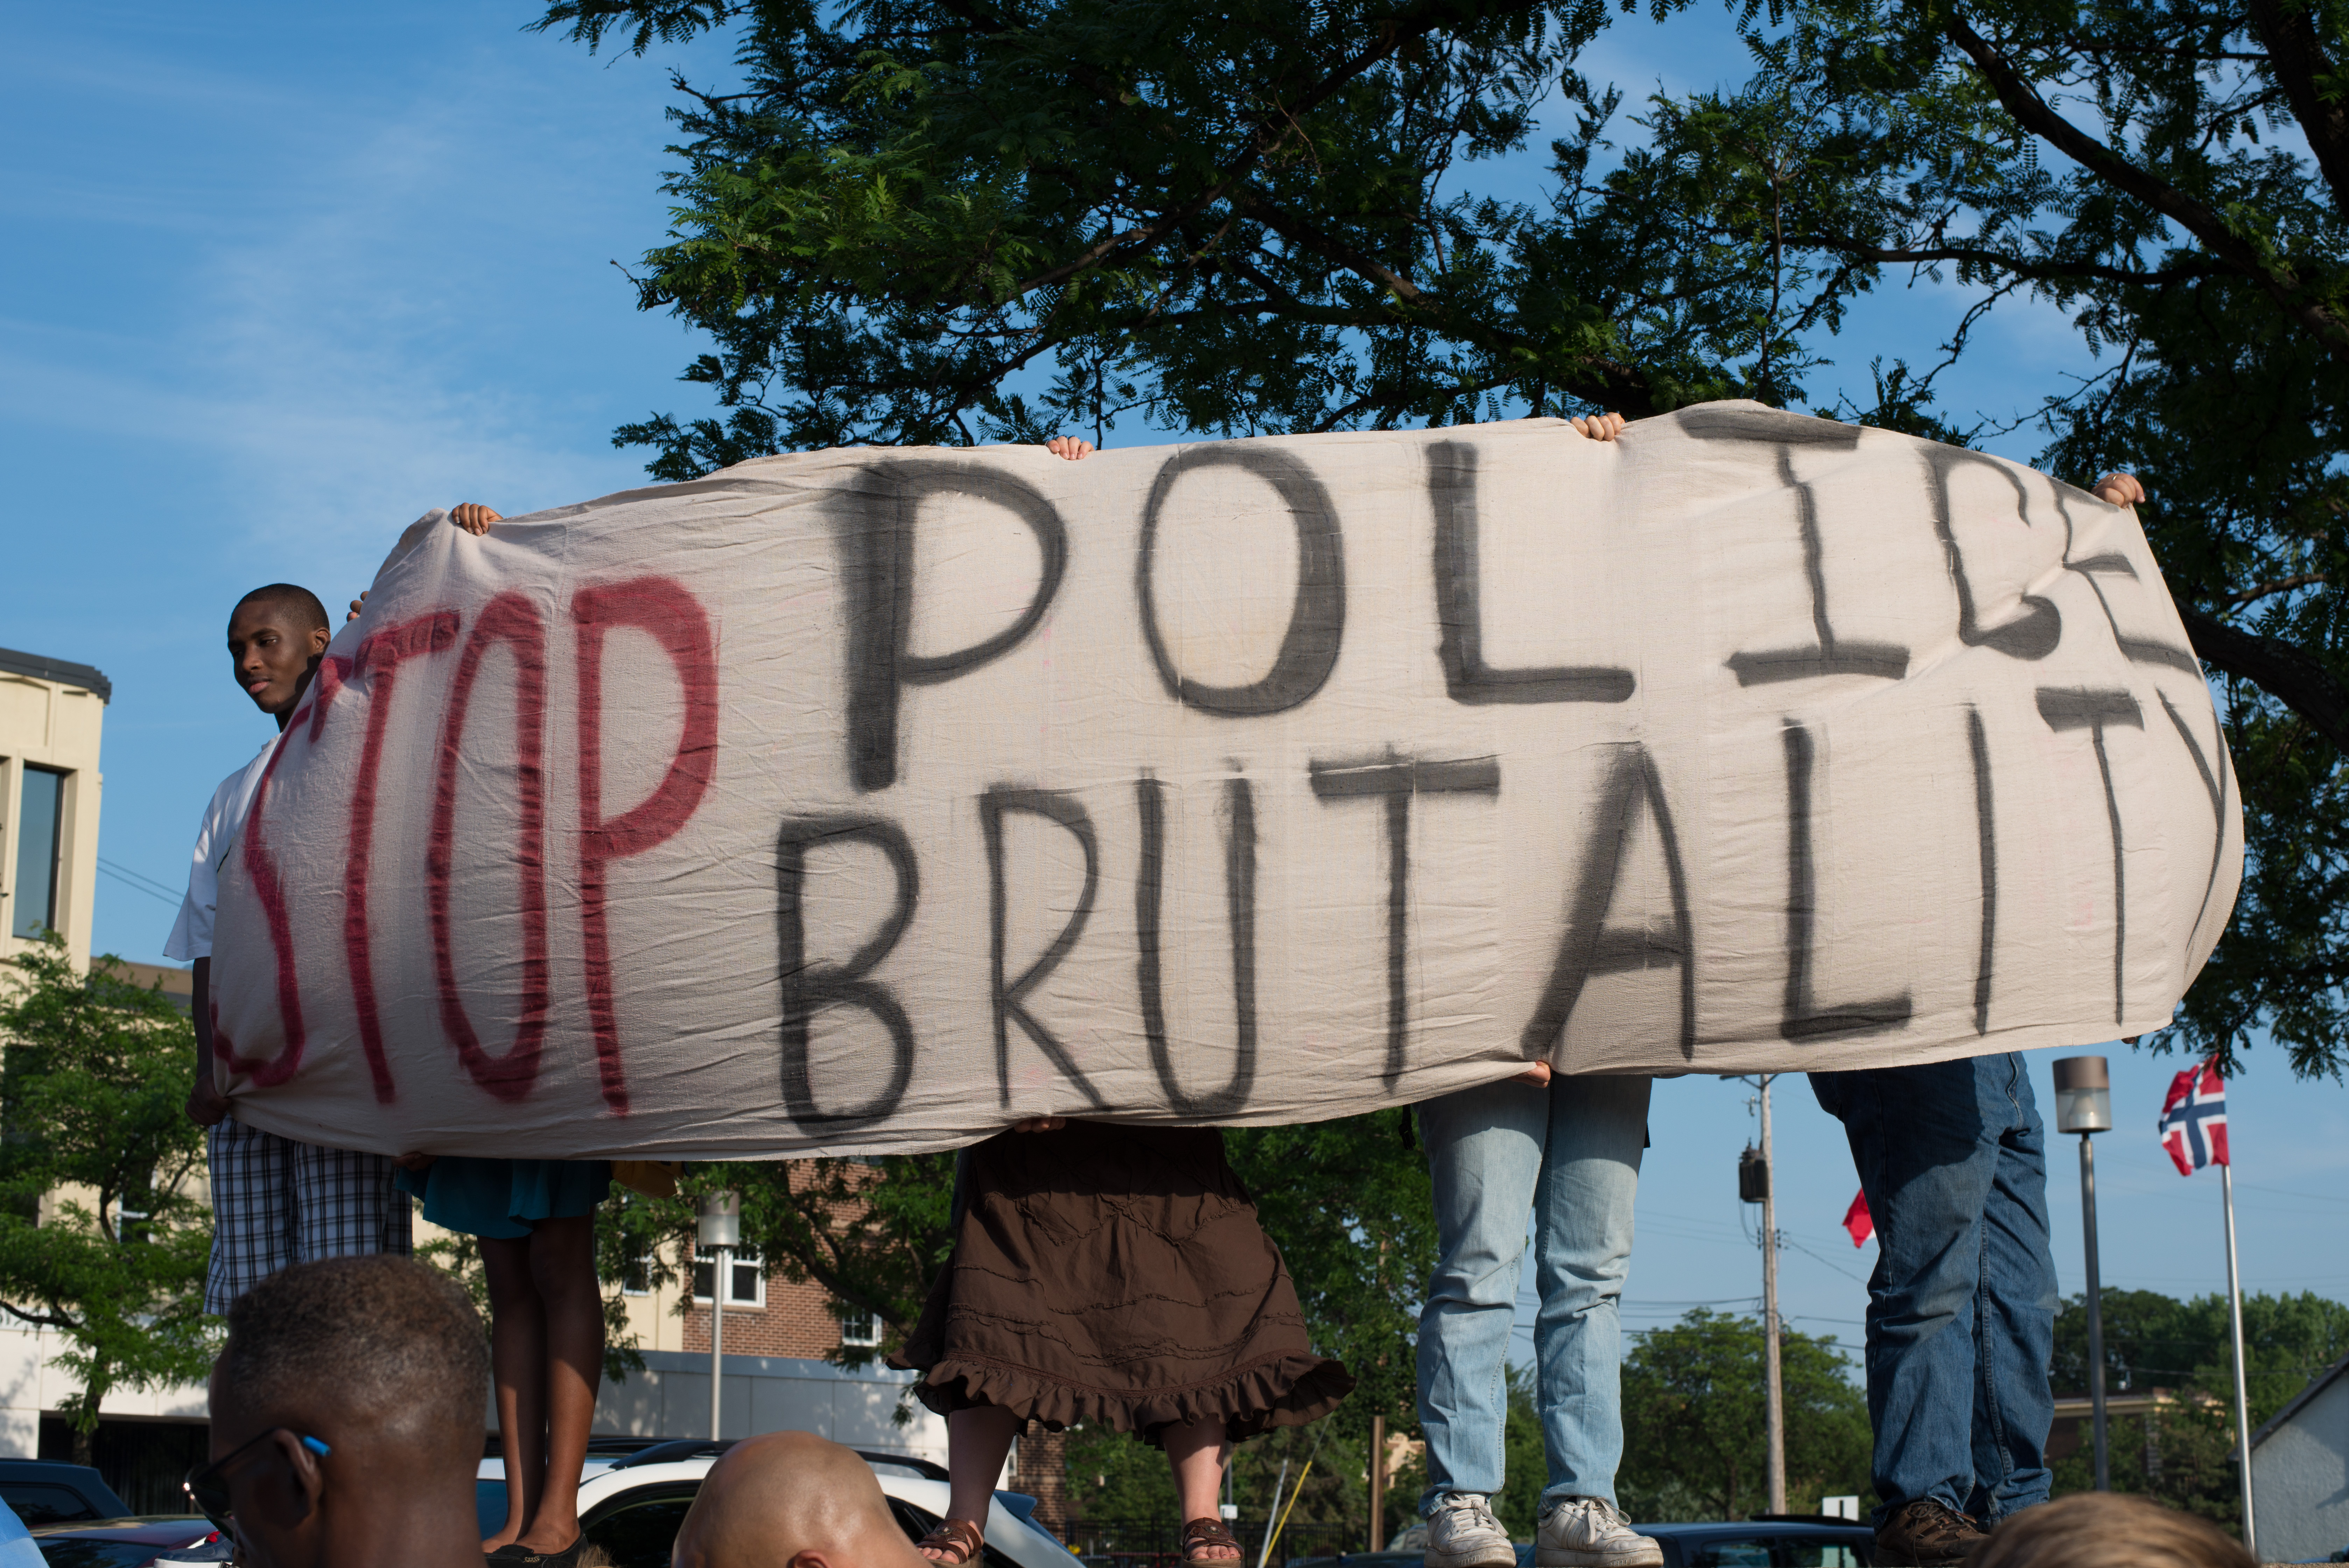 Police Brutality Essays Family Law Attorney Cover Letter StopPoliceBrutality Police Brutality EssaysD